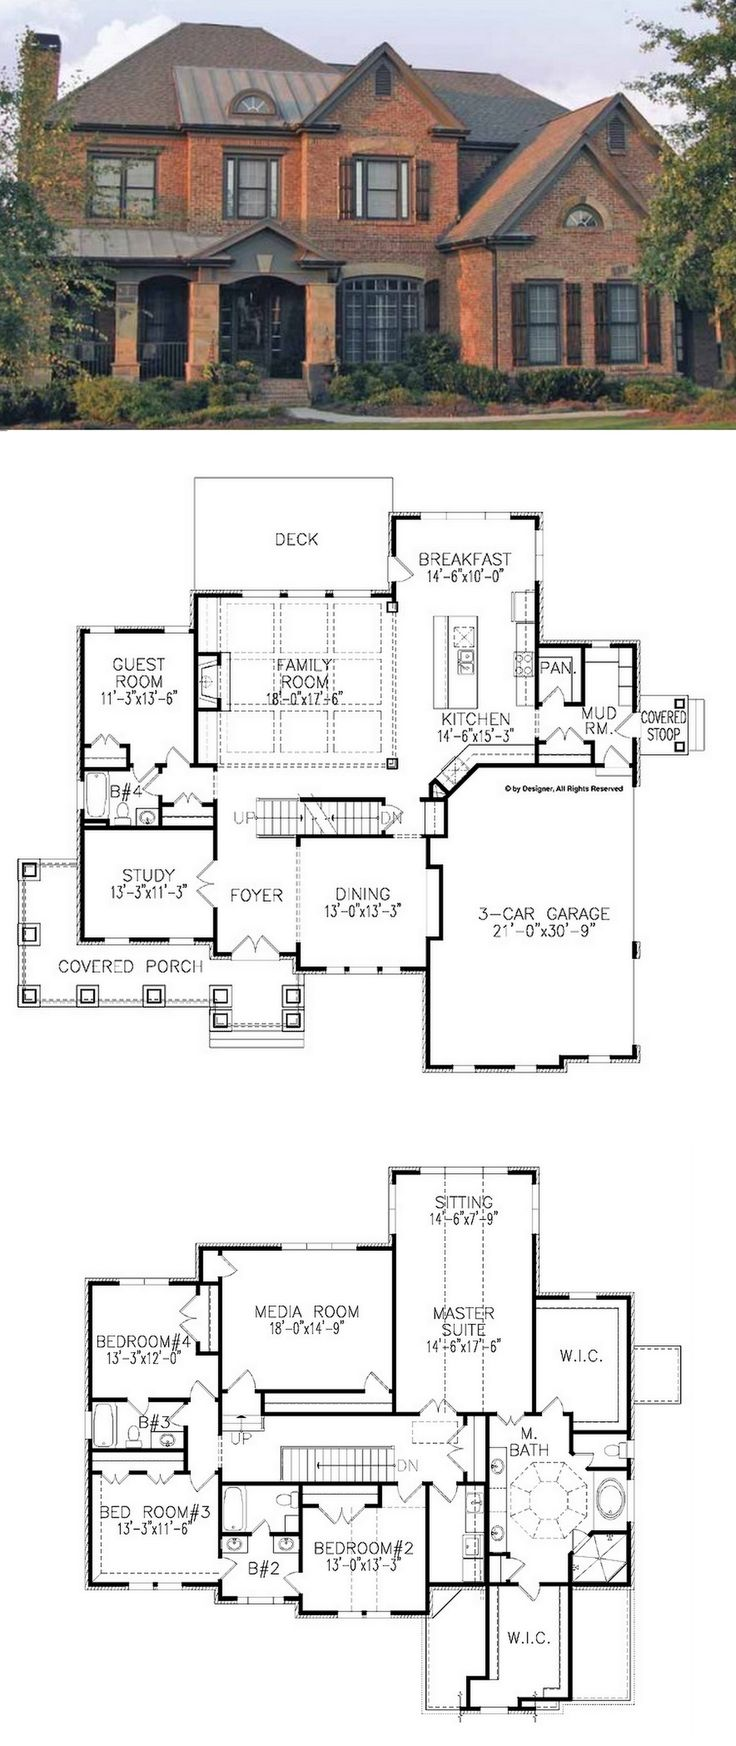 Best 25 5 bedroom house plans ideas only on pinterest 4 for 5 bedroom house plans 2 story